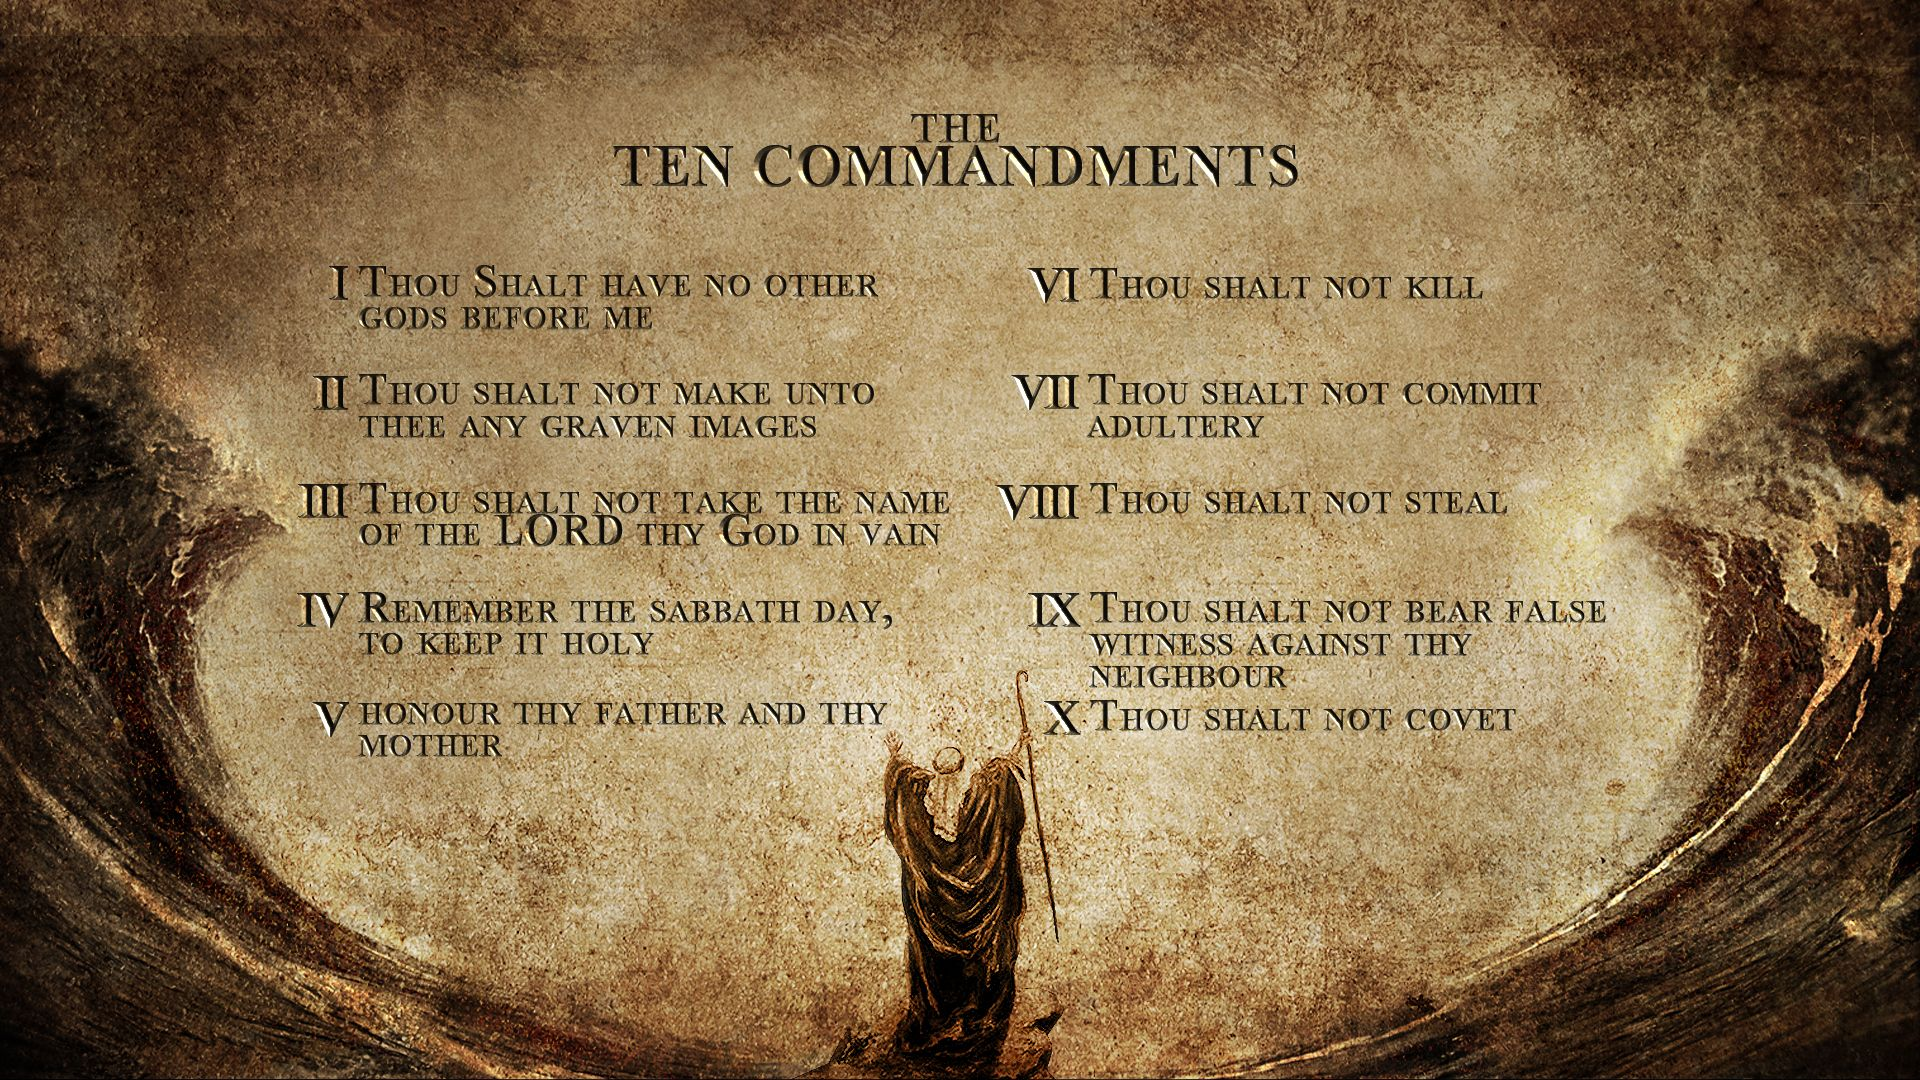 There Are Over 600 Laws Given In The Mosaic Covenant But Ten Commandments By God Comprise Actual Itself